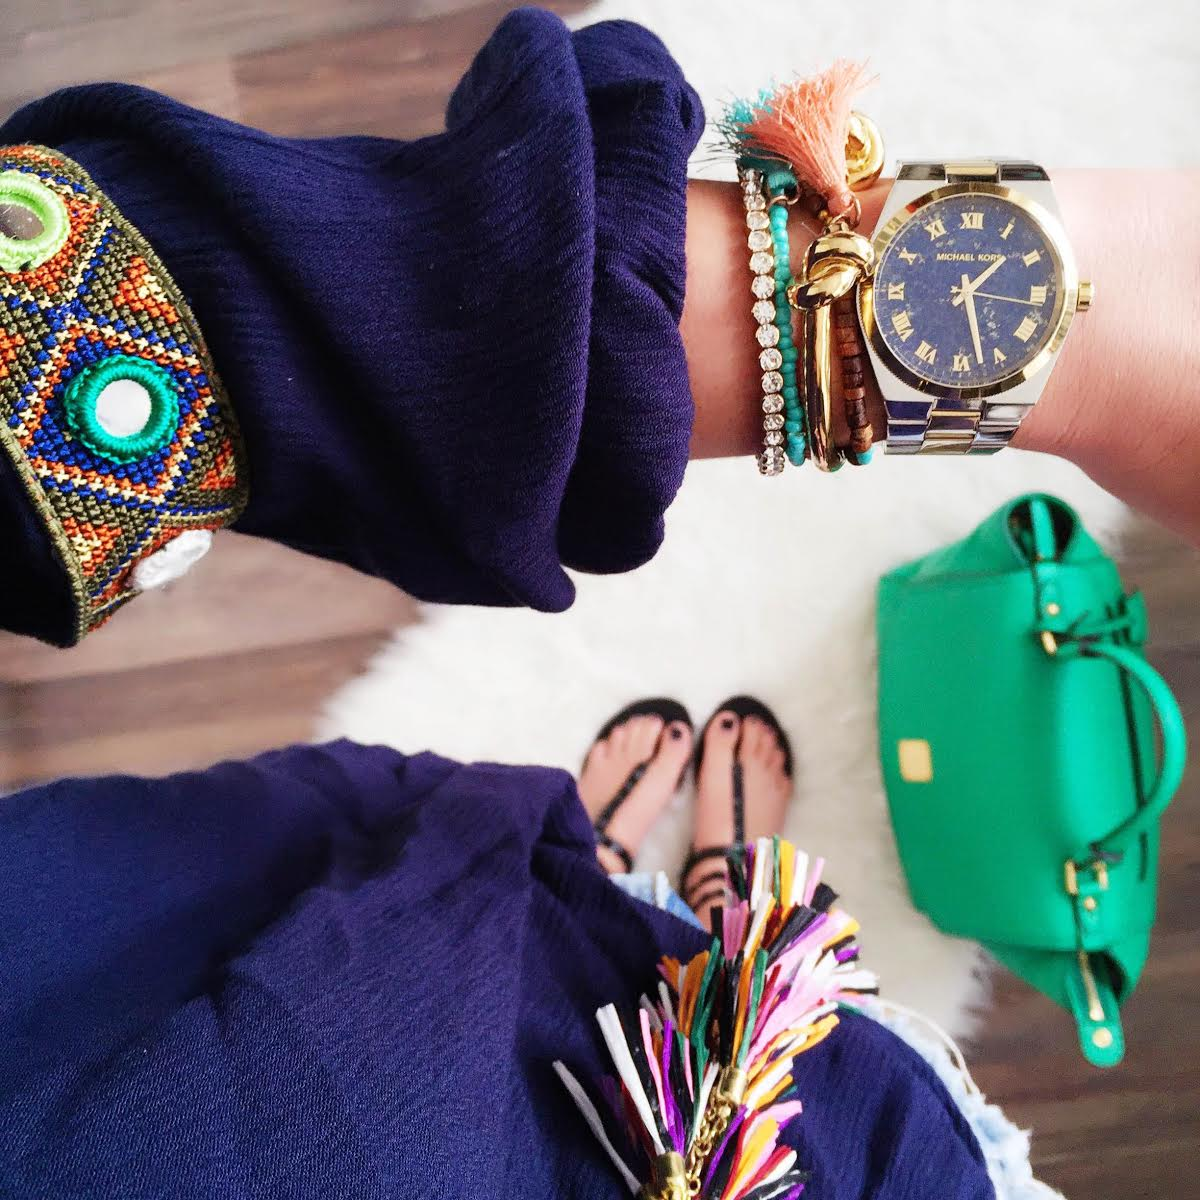 outfit-details-hippie-blouse-tassel-necklace-mcm-green-bag-ash-rockstud-sandals